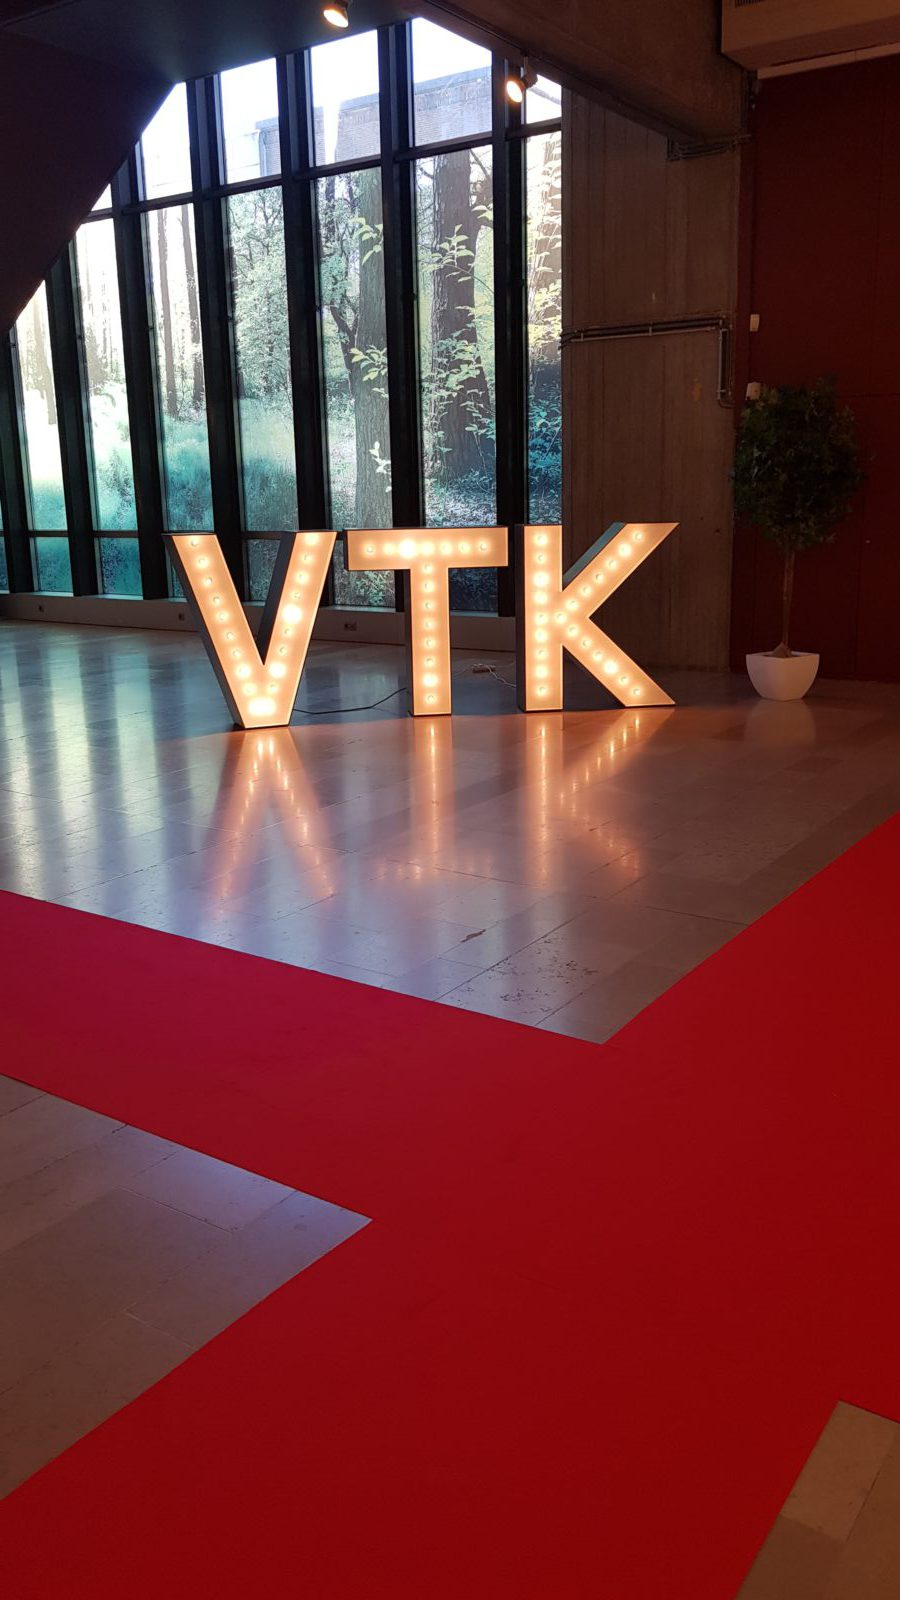 Job fair tour 2019 - VTK GENT